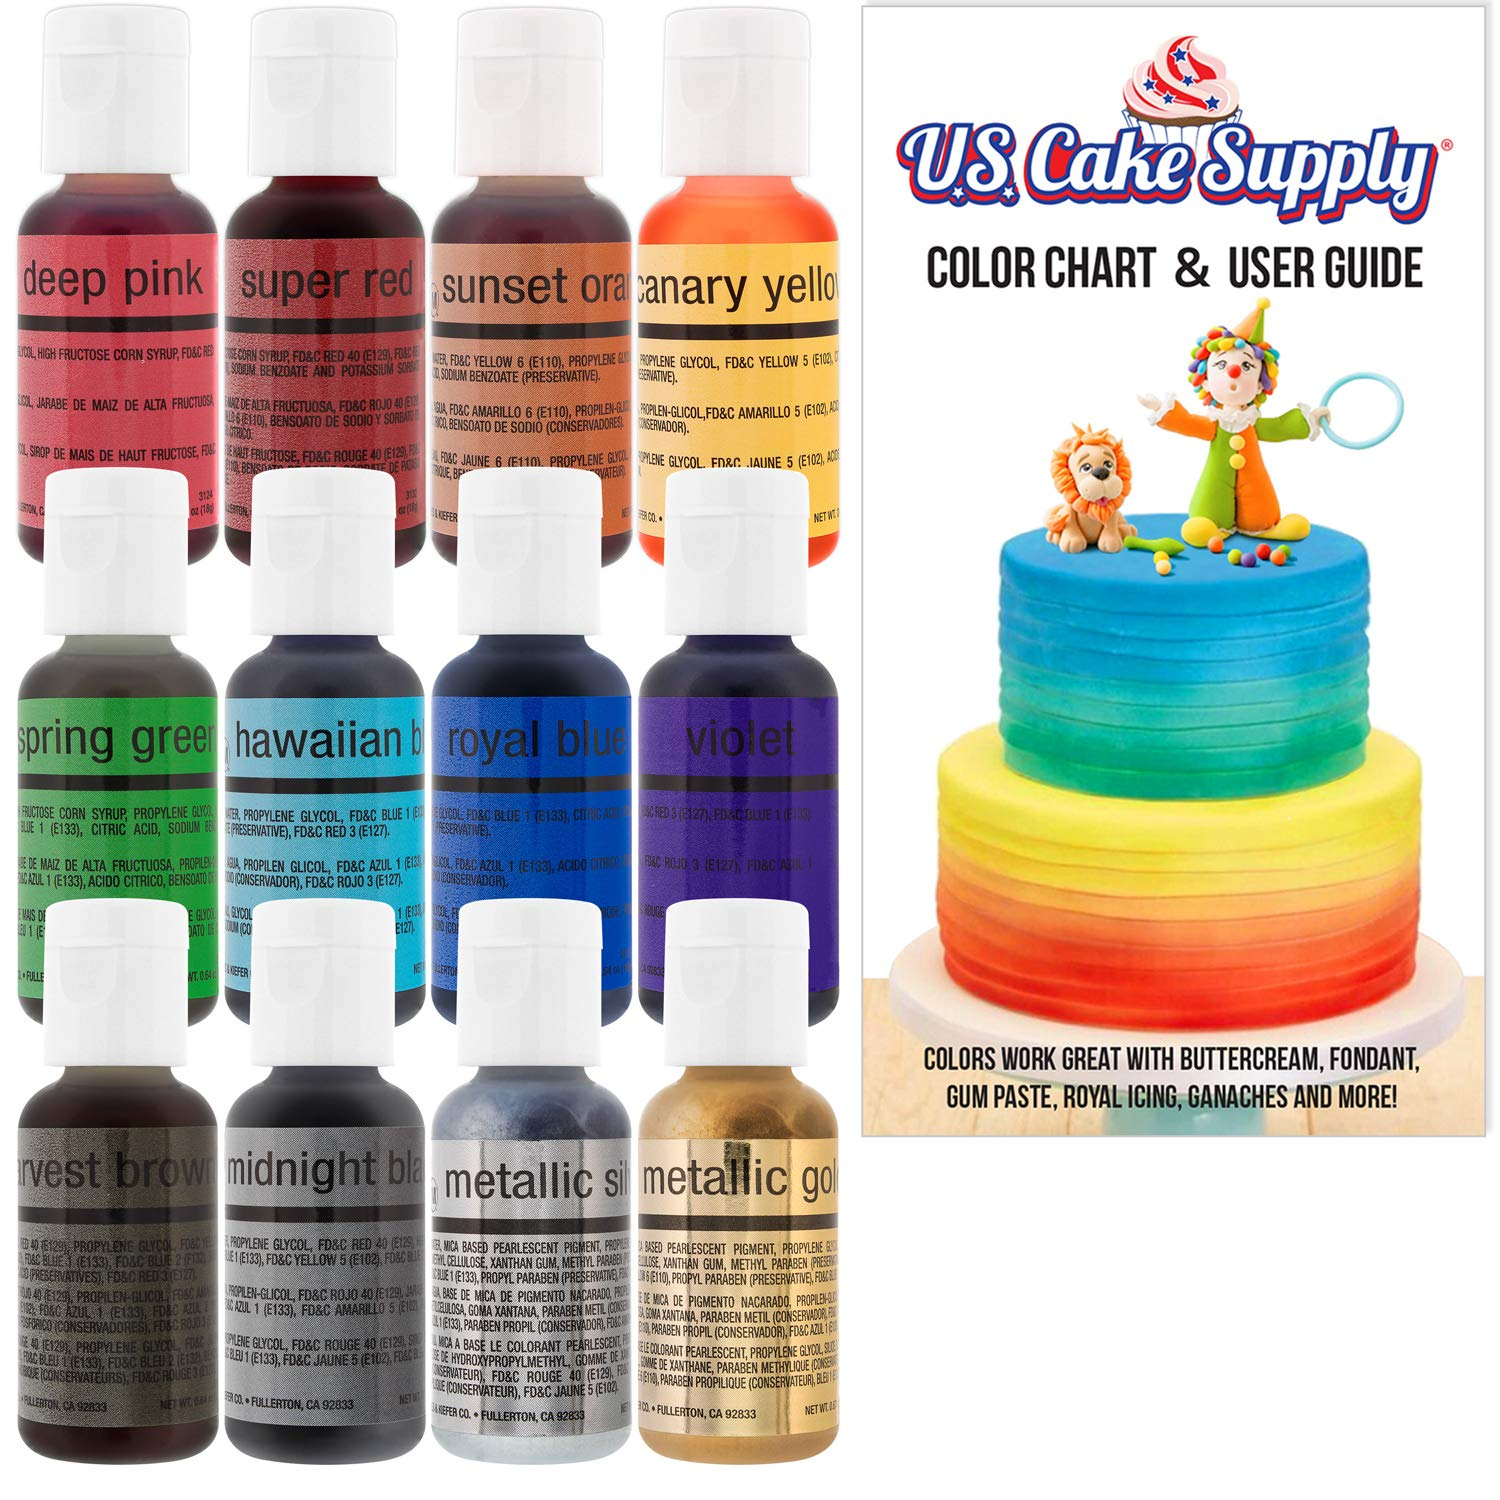 U.S. Cake Supply by Chefmaster Airbrush Cake Color Set - The 12 Most Popular Colors in 0.7 fl. oz. (20ml) Bottles by U.S. Cake Supply